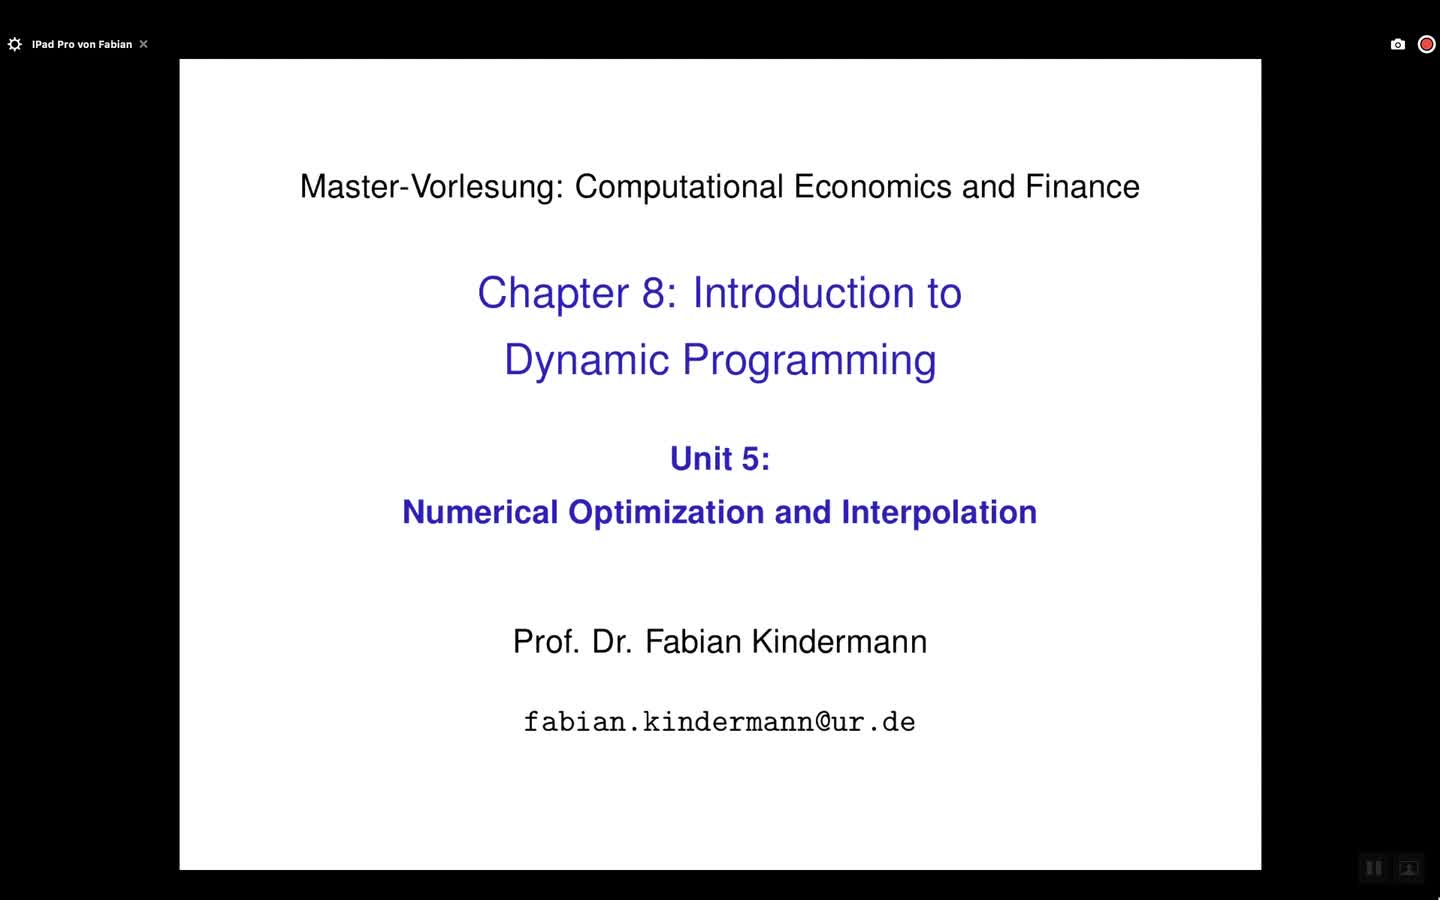 Chapter 8 - Unit 5 - Numerical Optimization and Interpolation